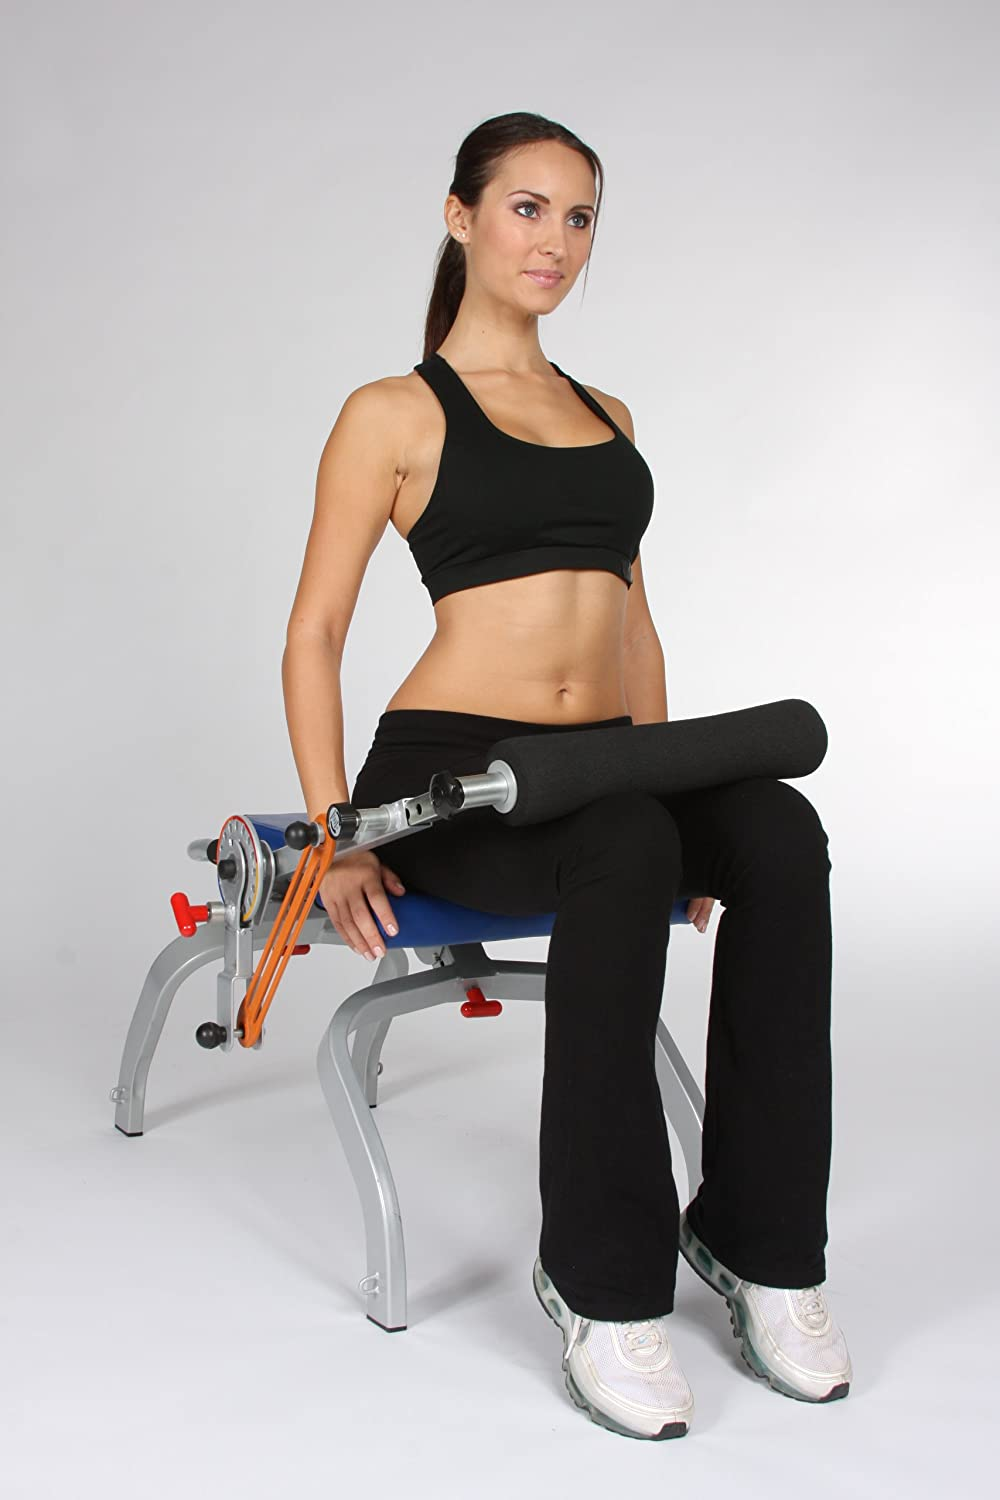 Amazon.com : Emson Transform 12 Body Transformation System : Abdominal Trainers : Sports & Outdoors